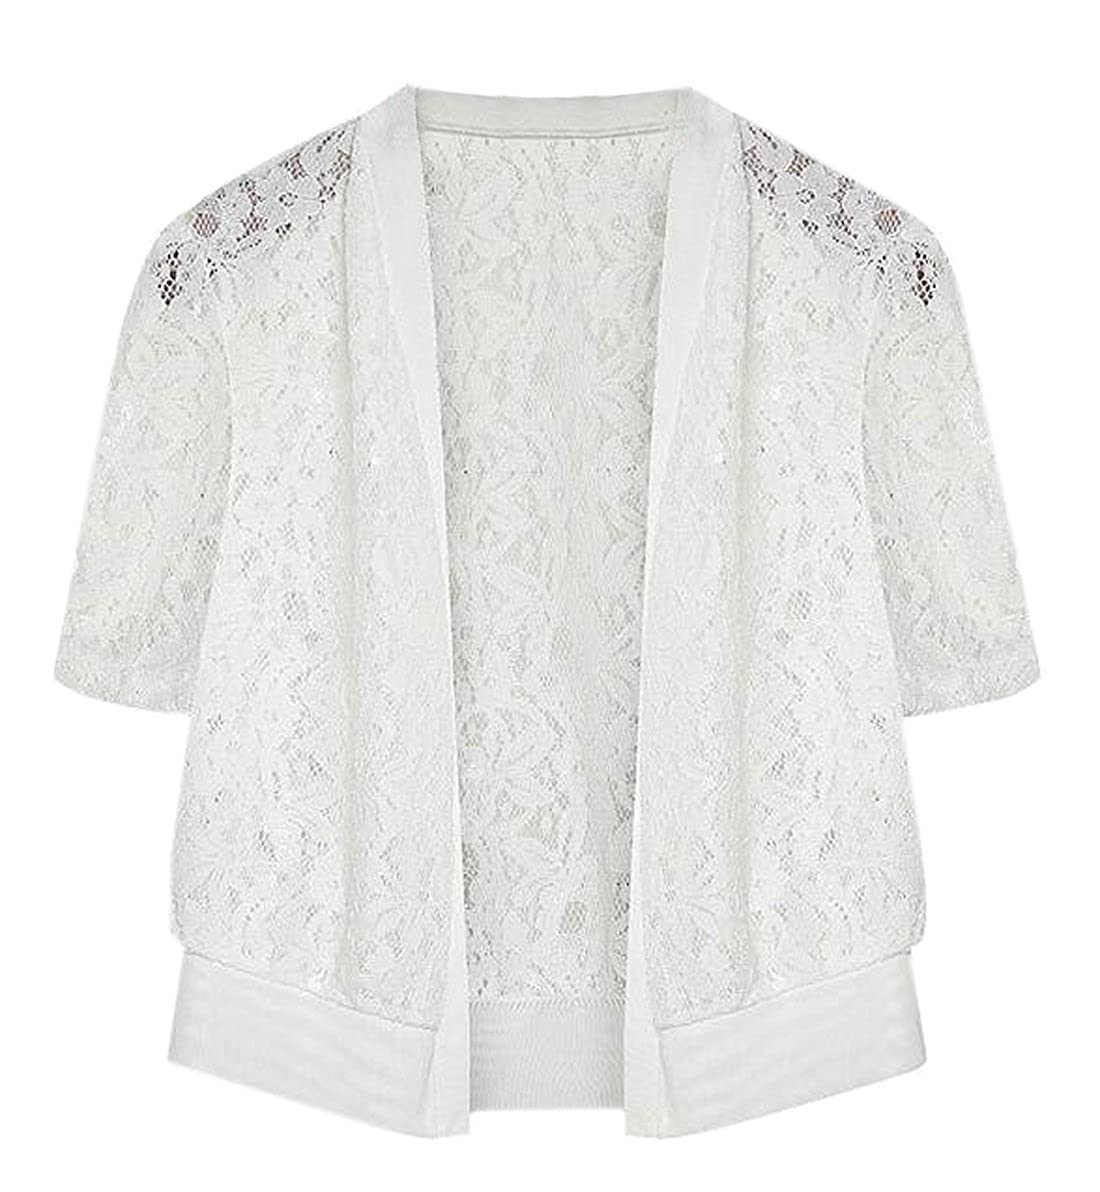 LD Womens Floral Lace Short Sleeve Summer Shrug Open Front Cardigans